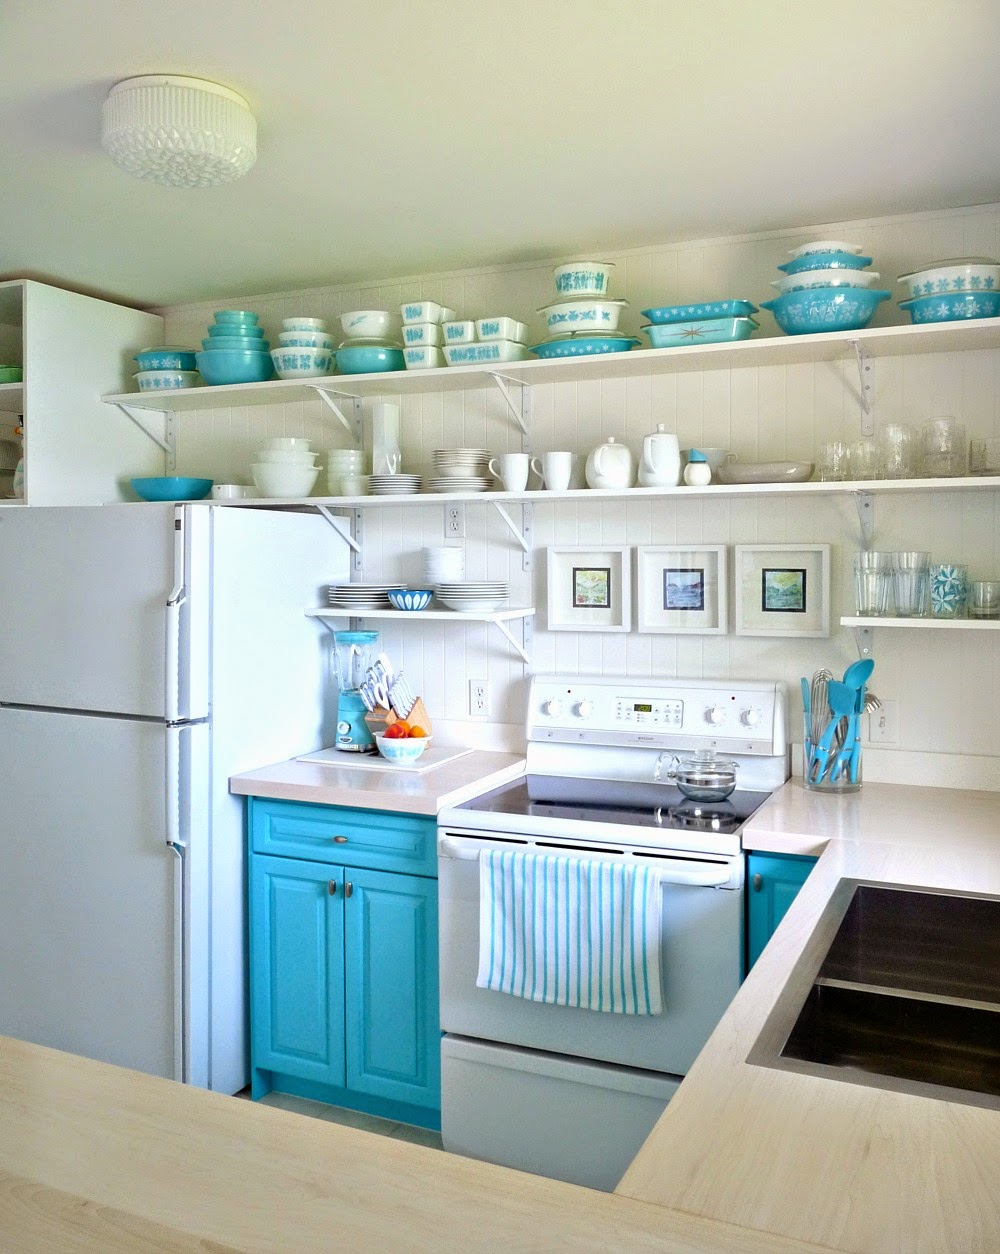 Here are all of the kitchen related posts (click on the link to read